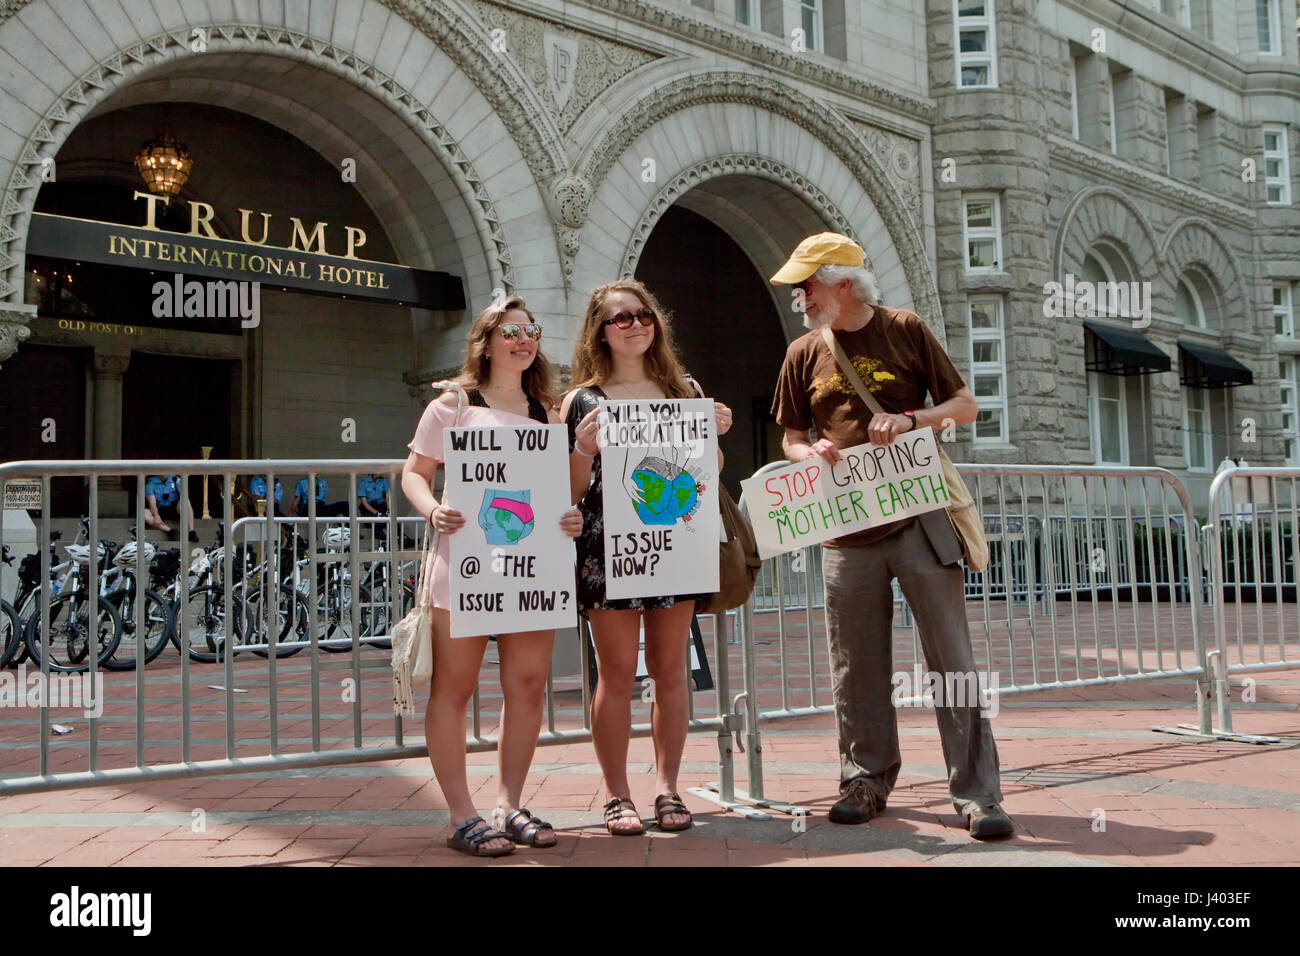 Climate change activists protesting in front of Trump International Hotel - Washington, DC USA - Stock Image